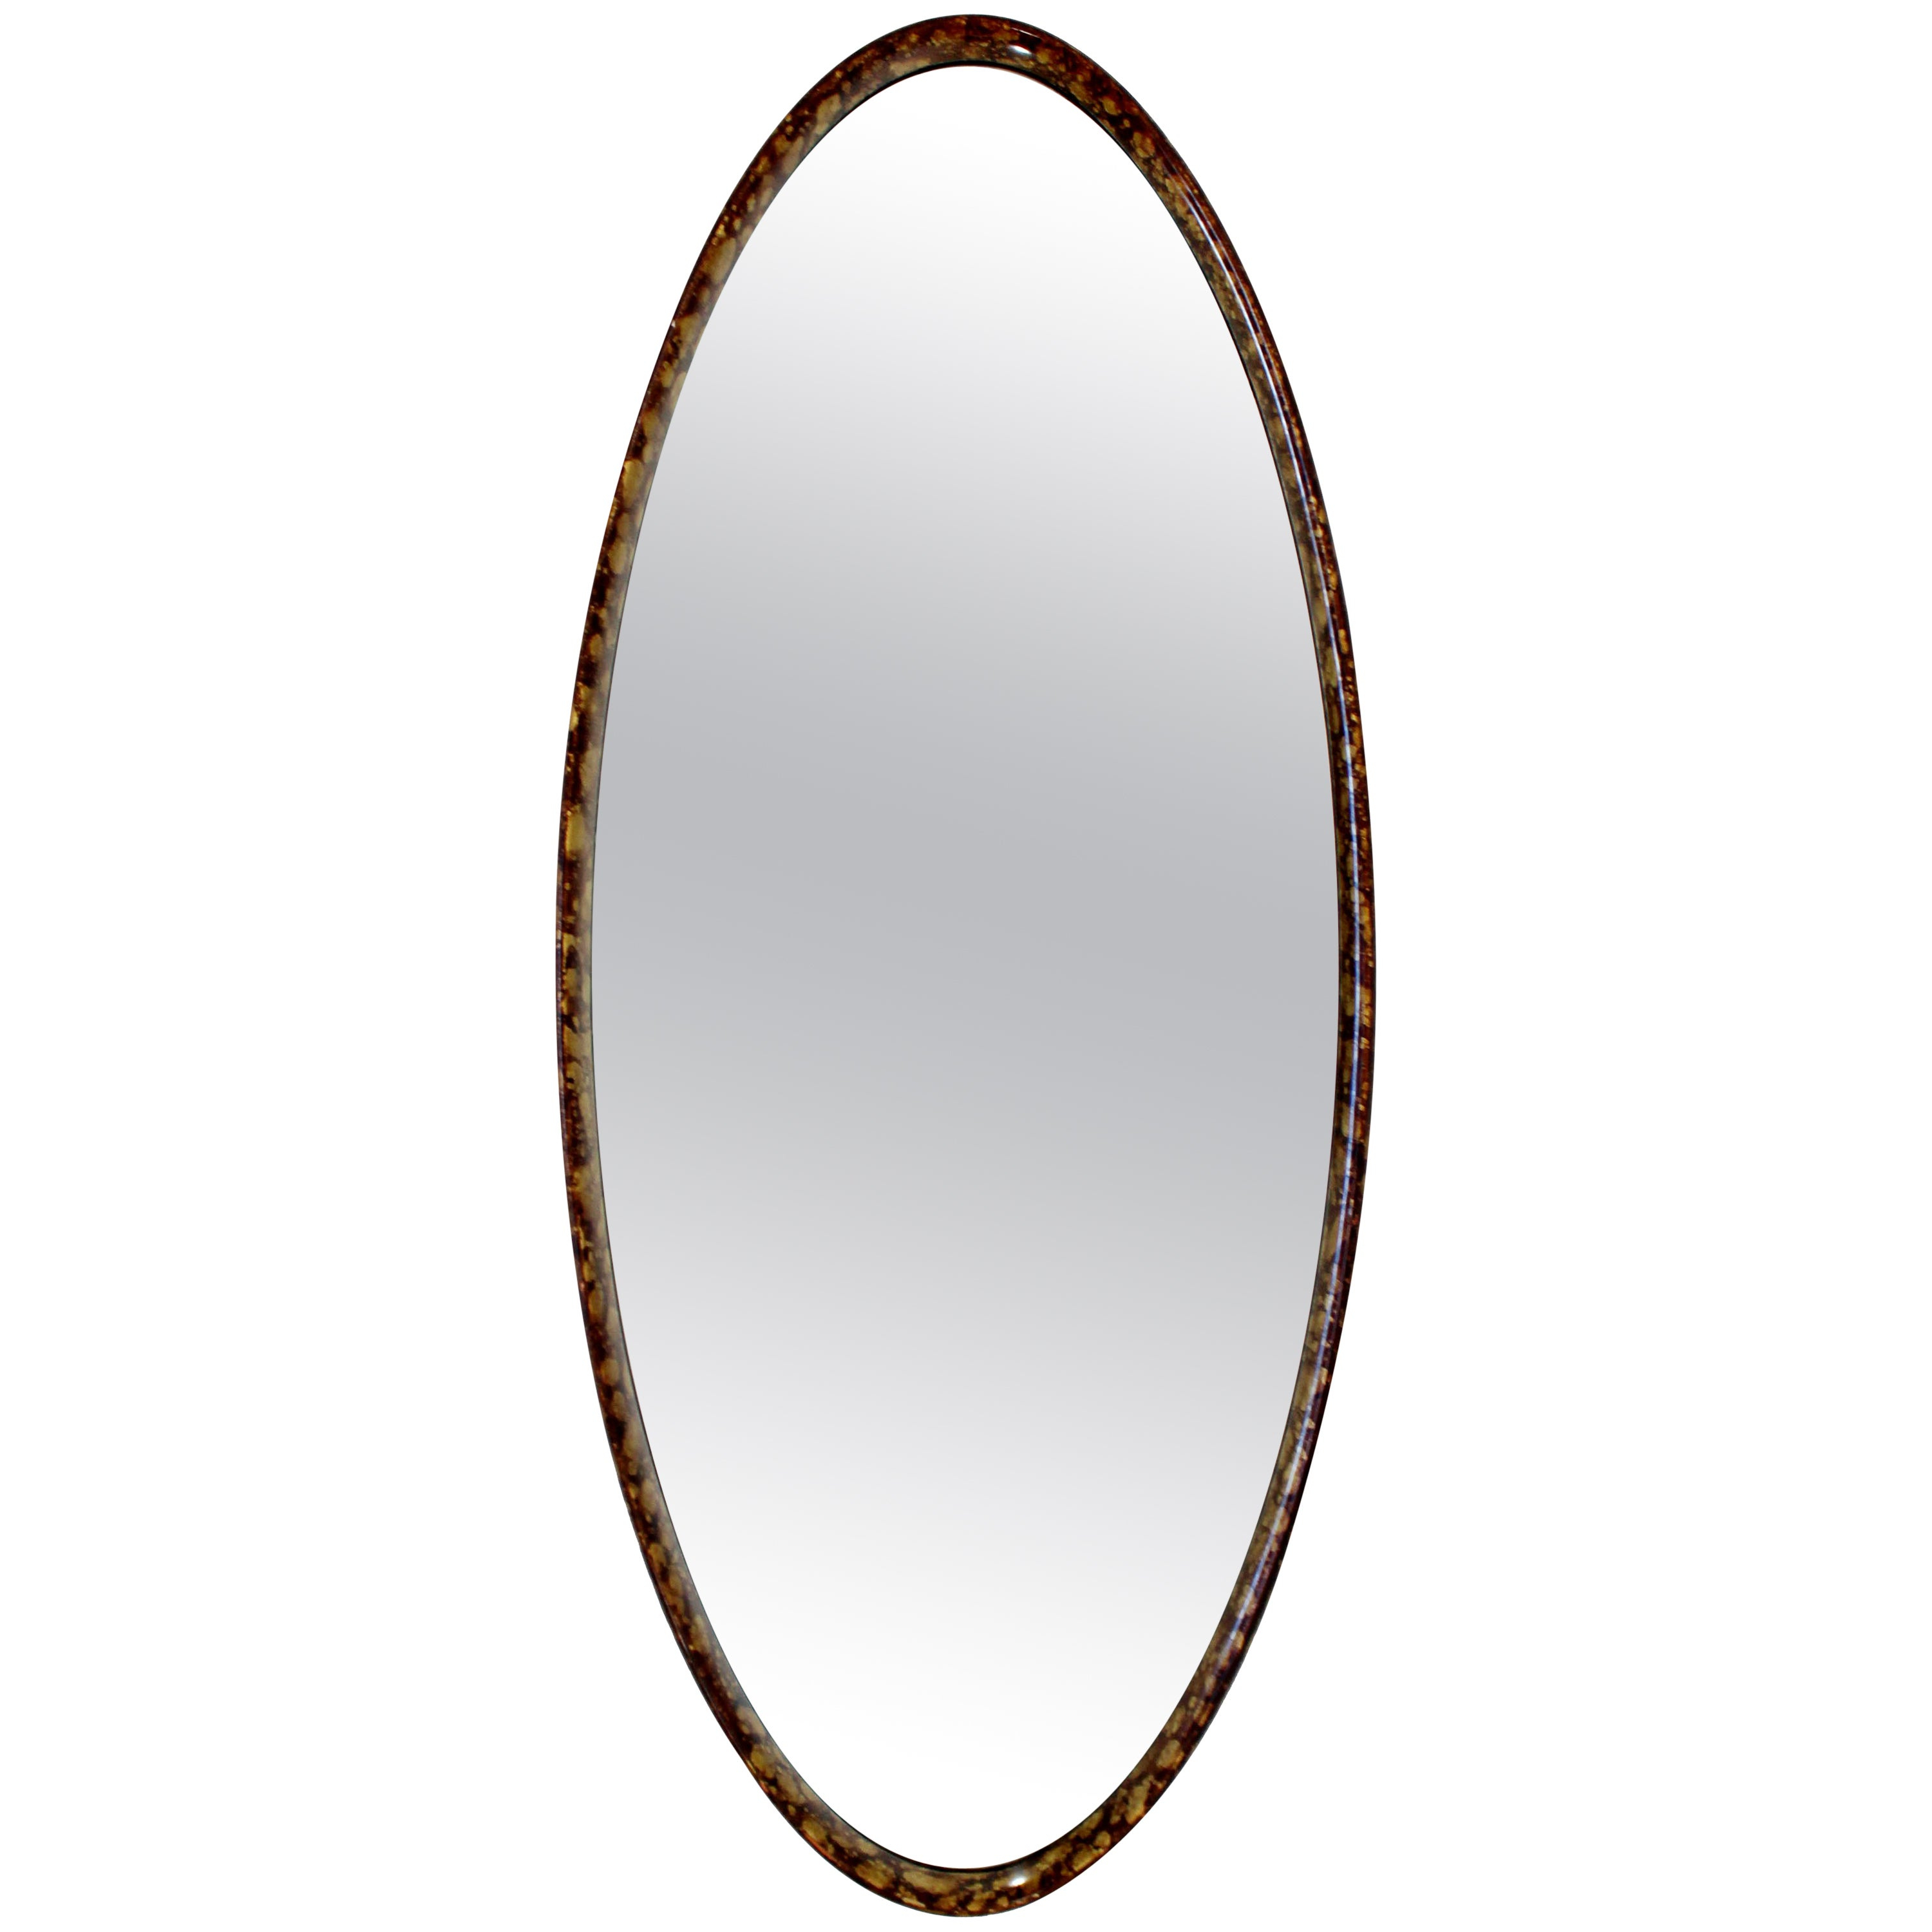 Mid Century Modern Hollywood Regency Large Oval Wall Mirrorla Barge,  1960s In 2019 Full Length Oval Wall Mirrors (View 5 of 20)